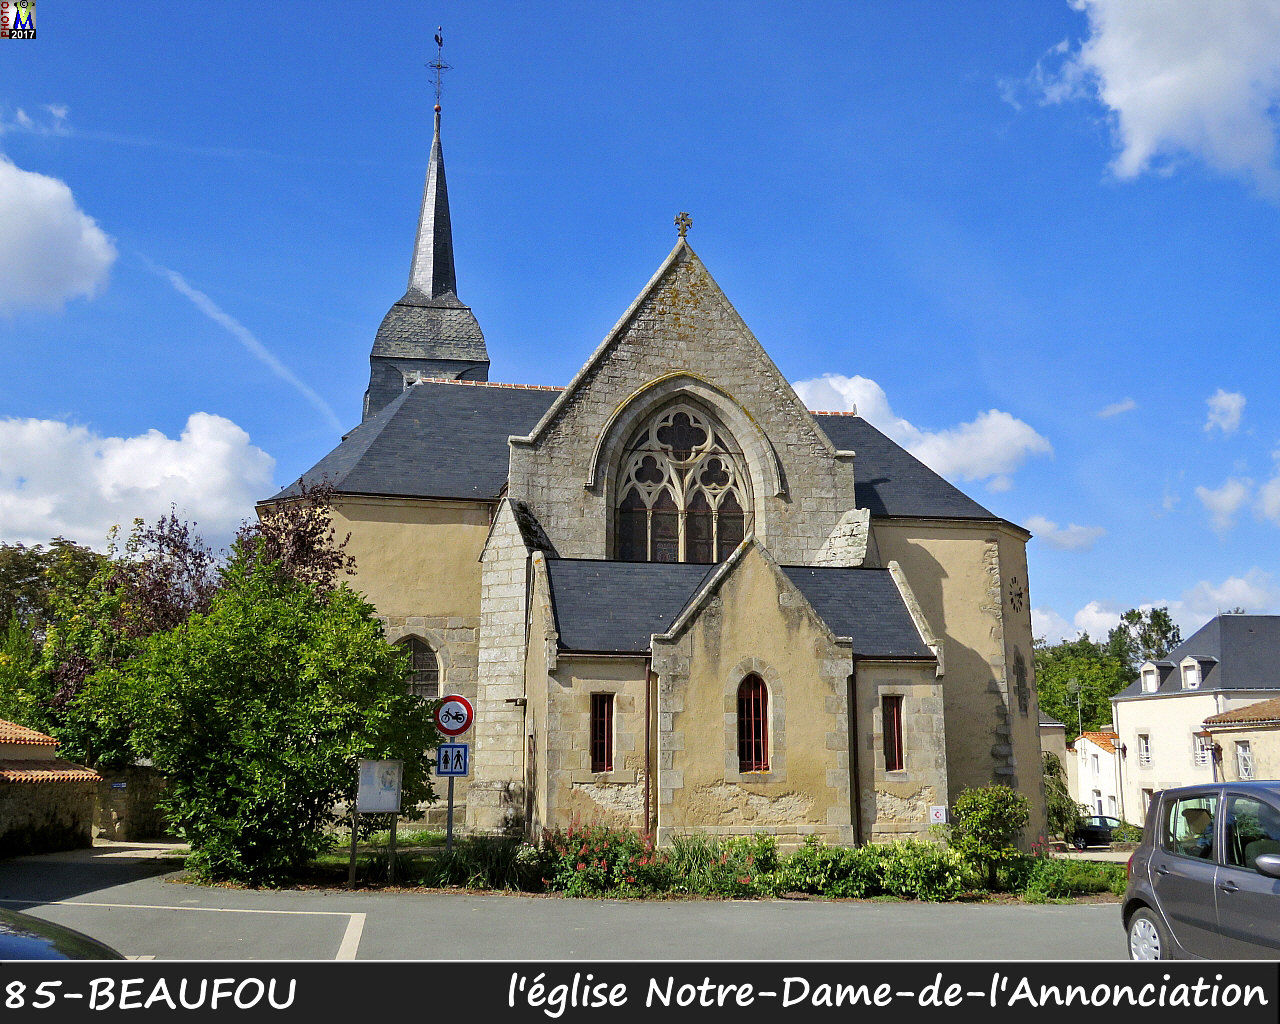 85BEAUFOU_eglise_104.jpg